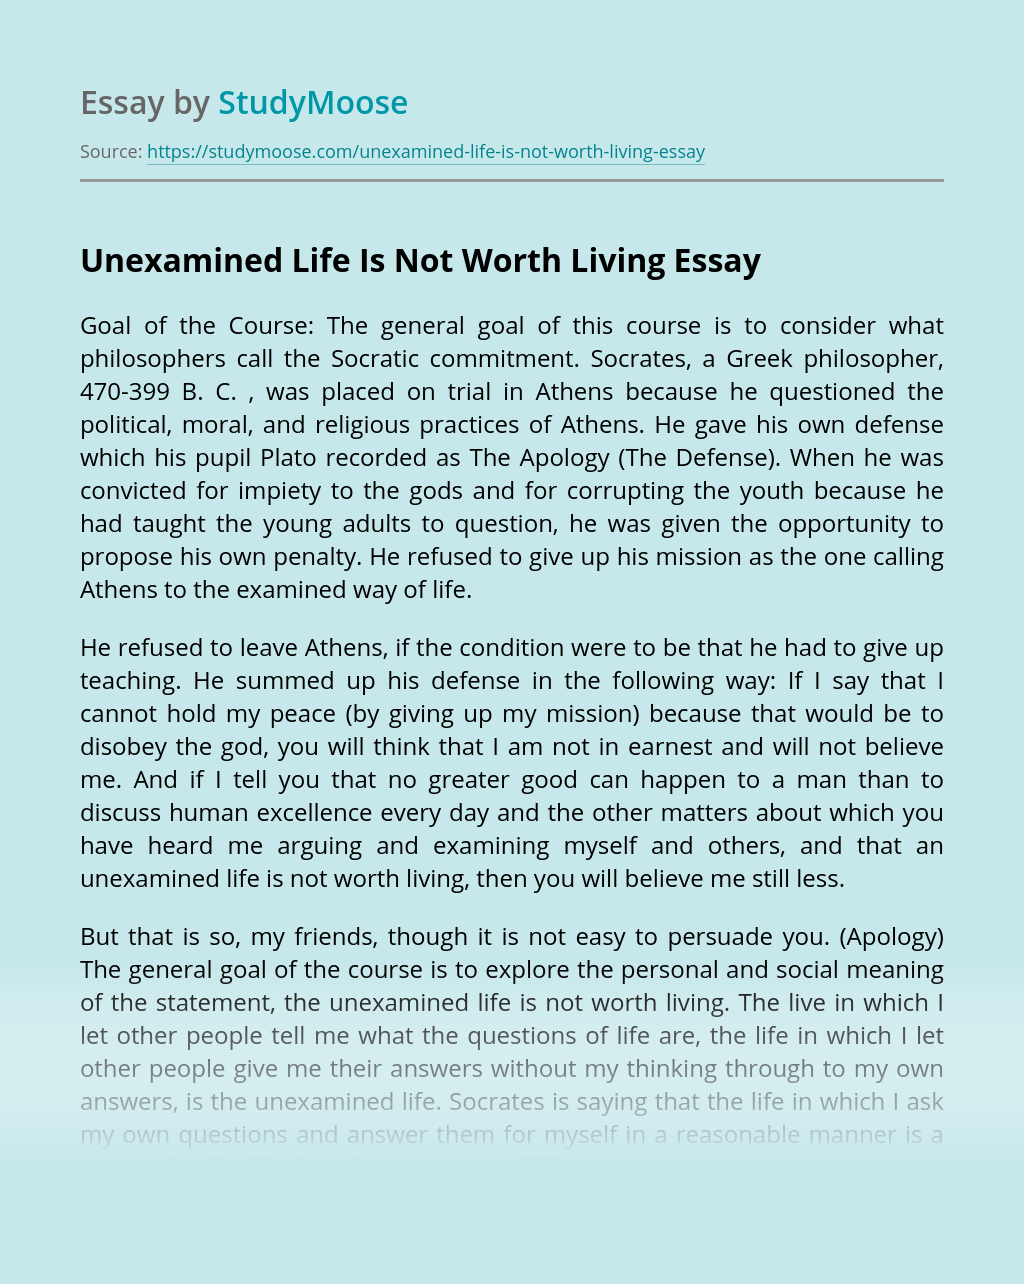 Unexamined Life Is Not Worth Living